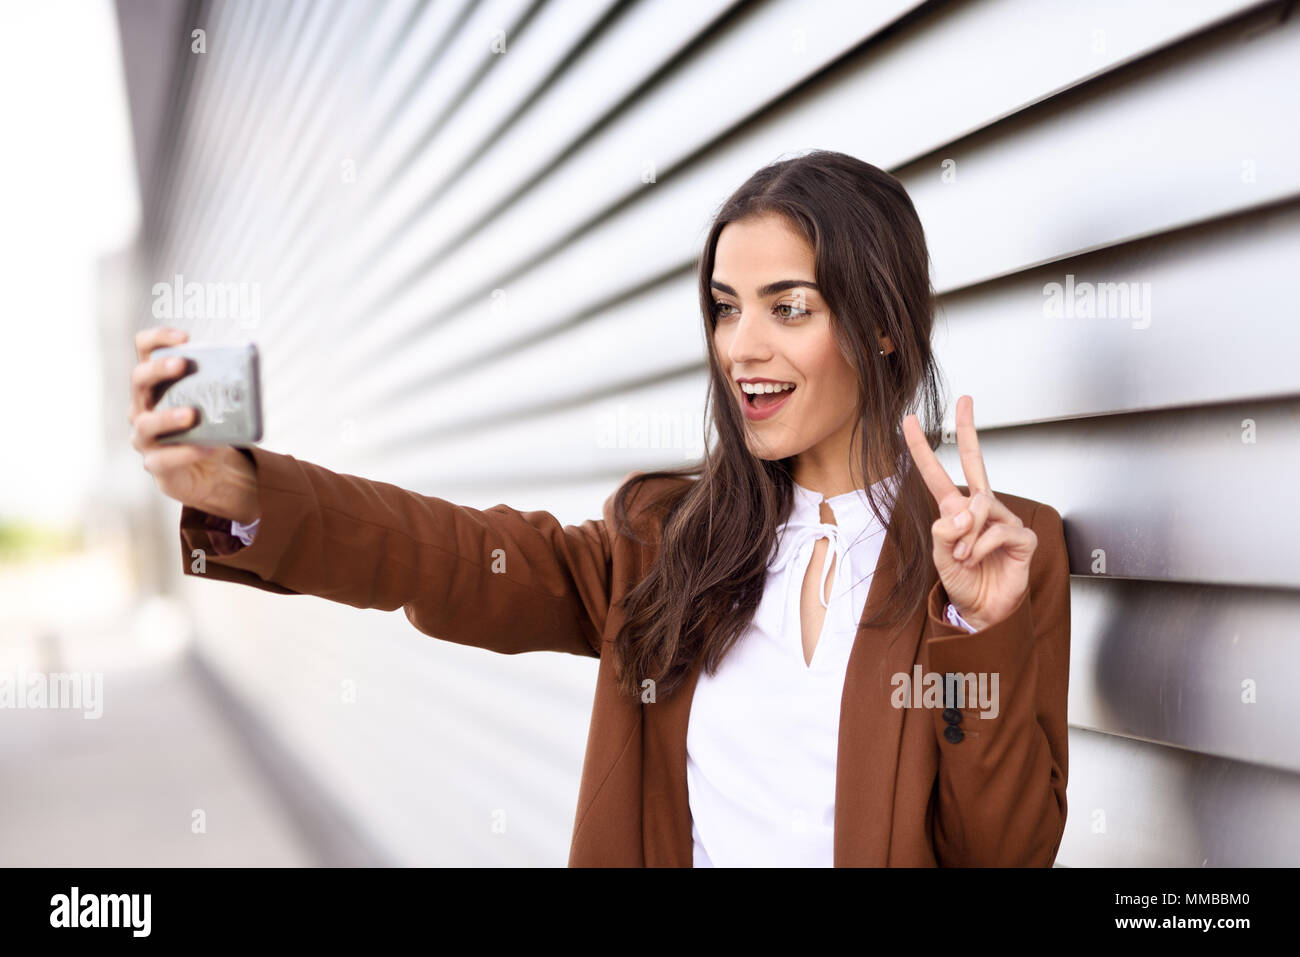 Young woman taking selfie photograph with smartphone in urban background. Beautiful girl wearing formal wear using smart phone. Young female with brow - Stock Image